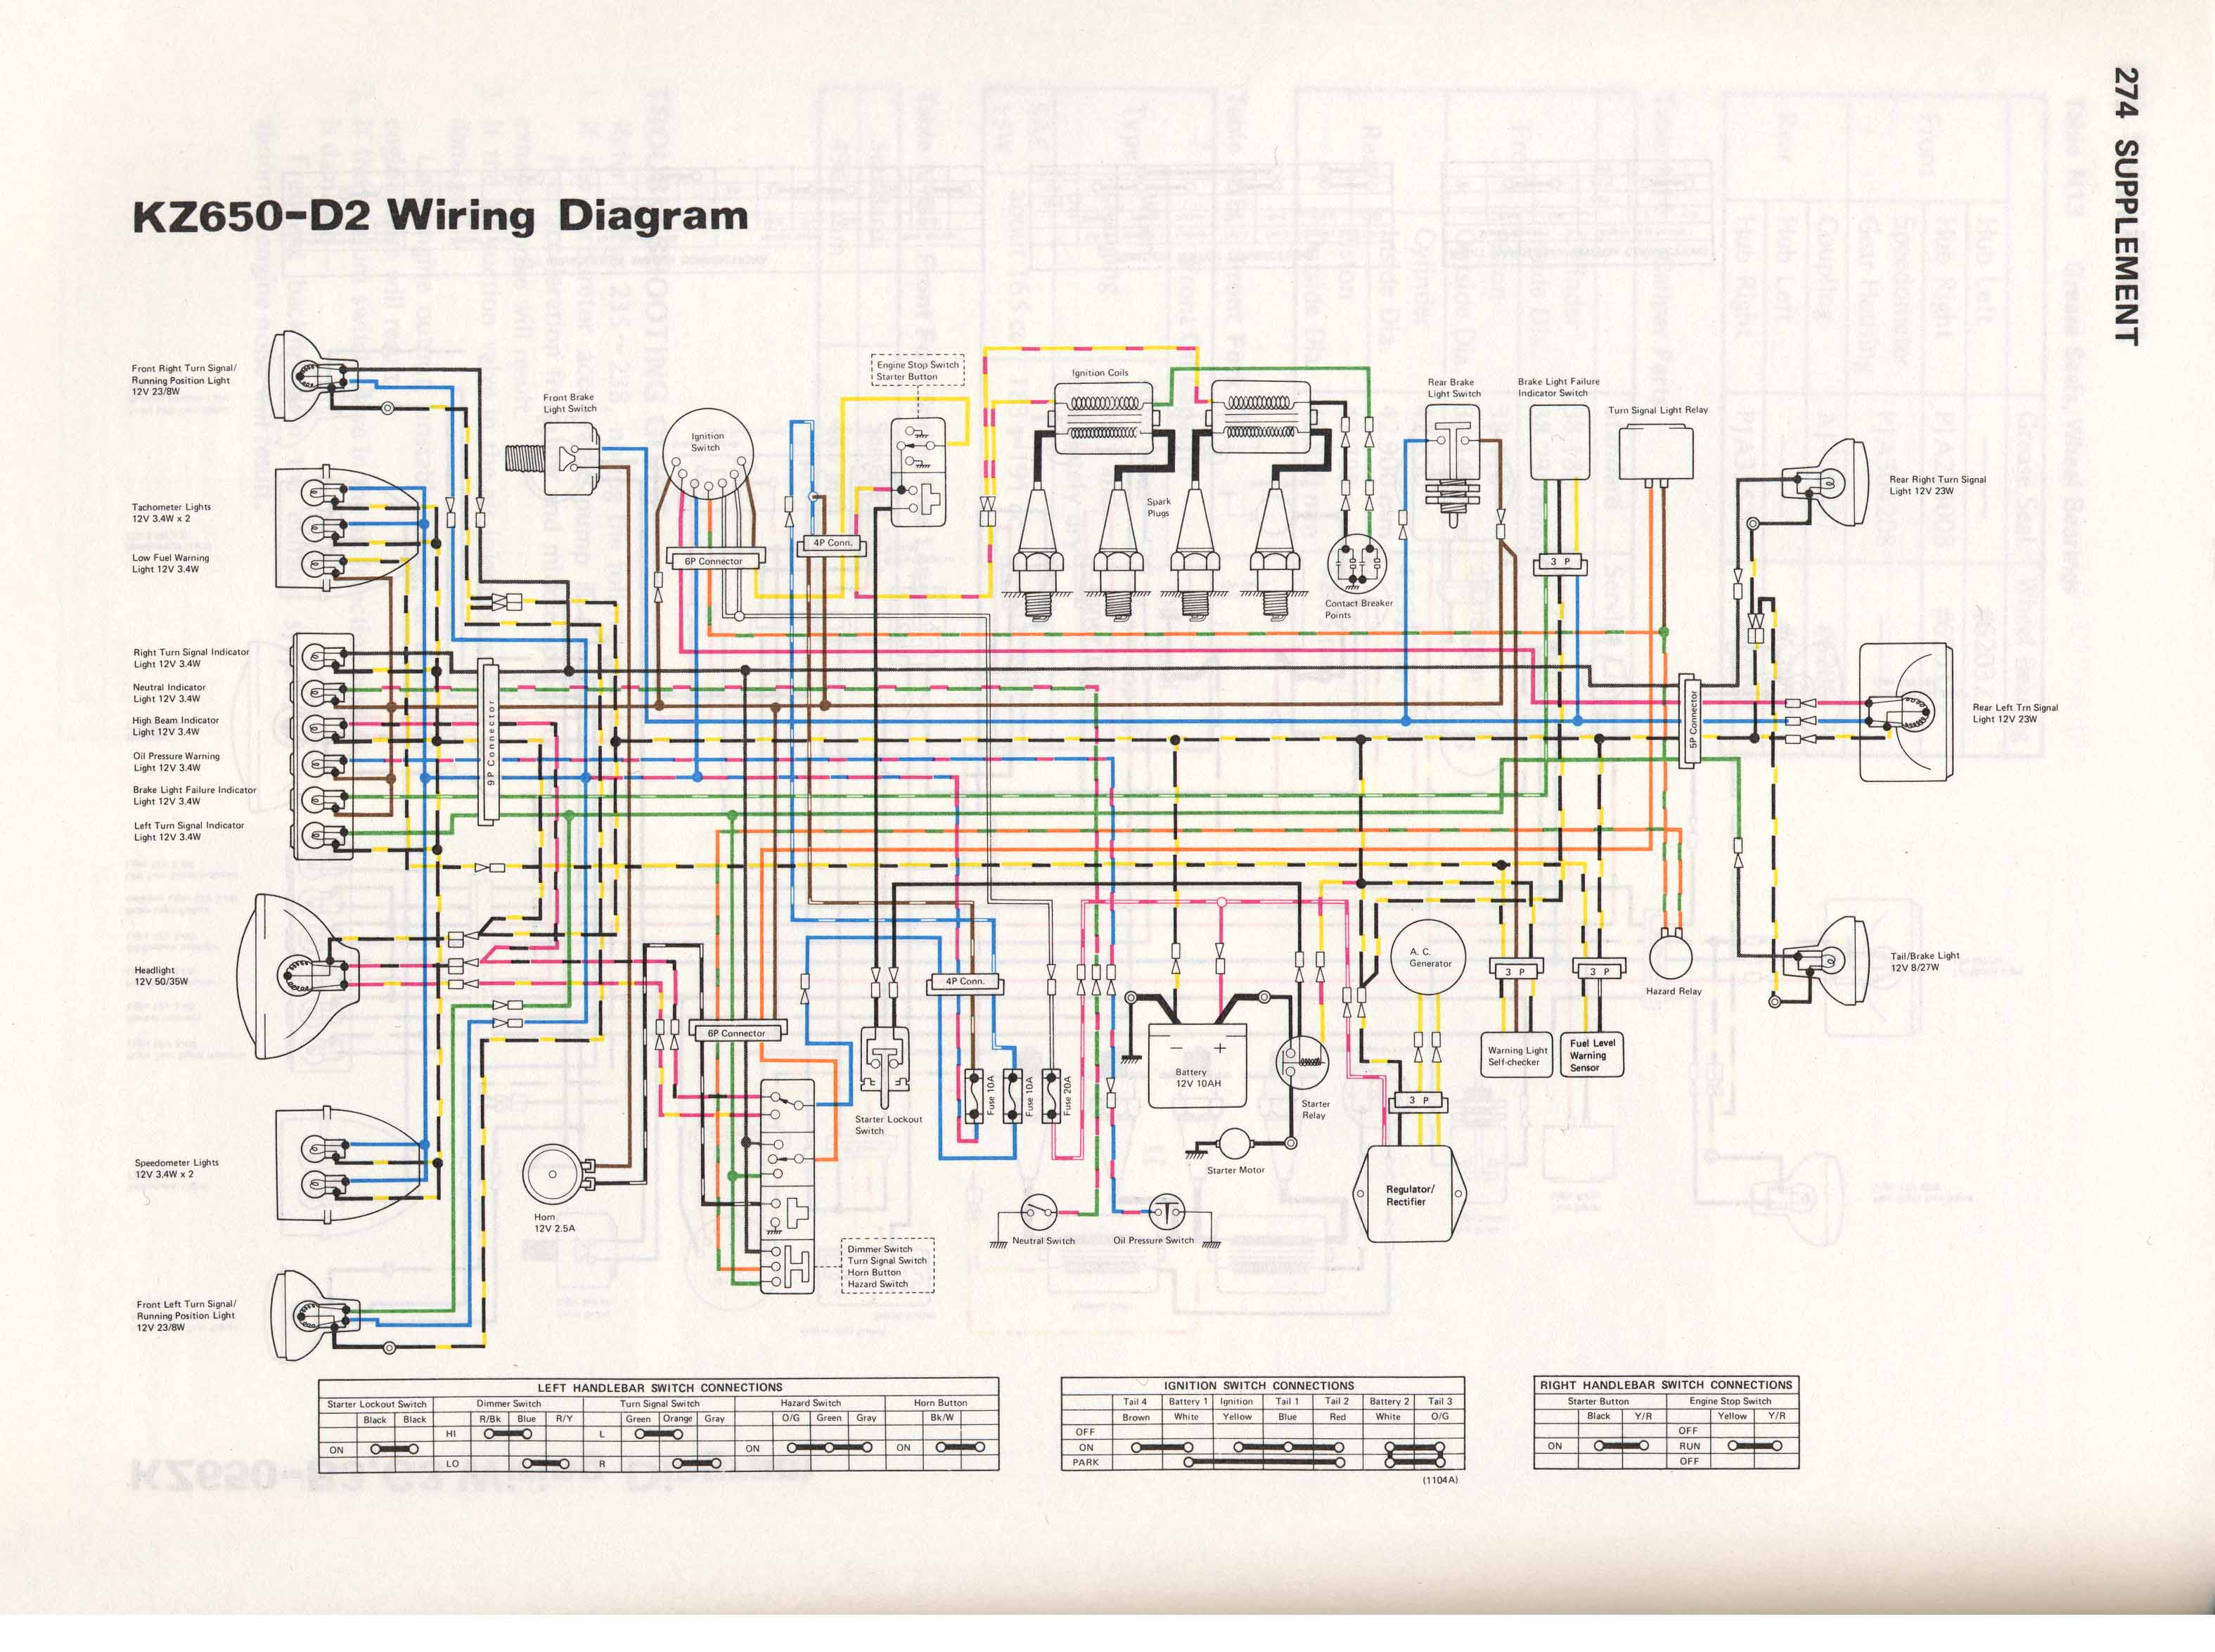 KZ650 D2 kz650 info wiring diagrams  at gsmportal.co